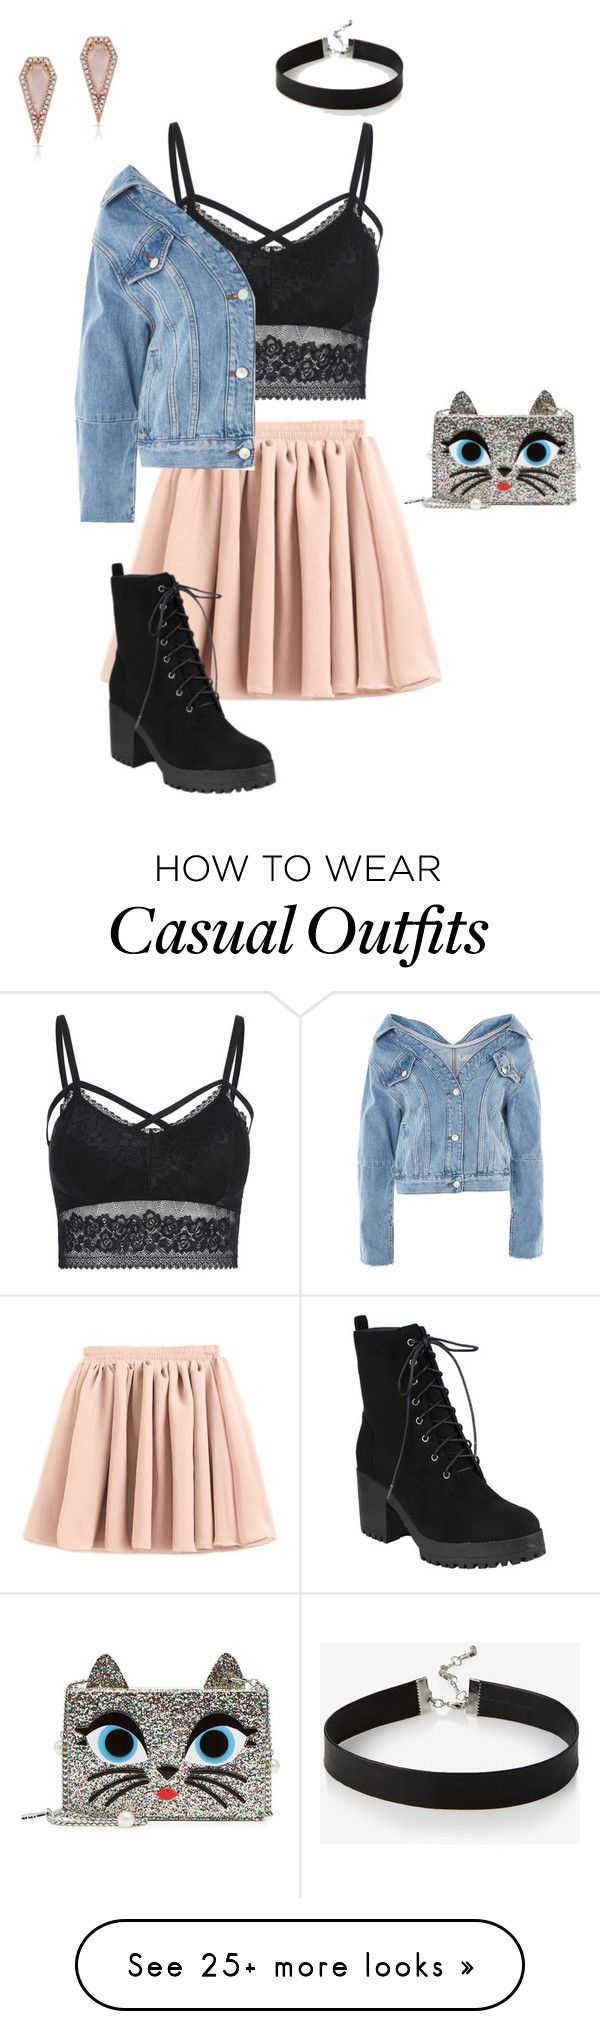 """""""Casual1"""" by addileaaaa on Polyvore featuring Karl Lagerfeld, Express, Anne Sisteron and Topshop"""